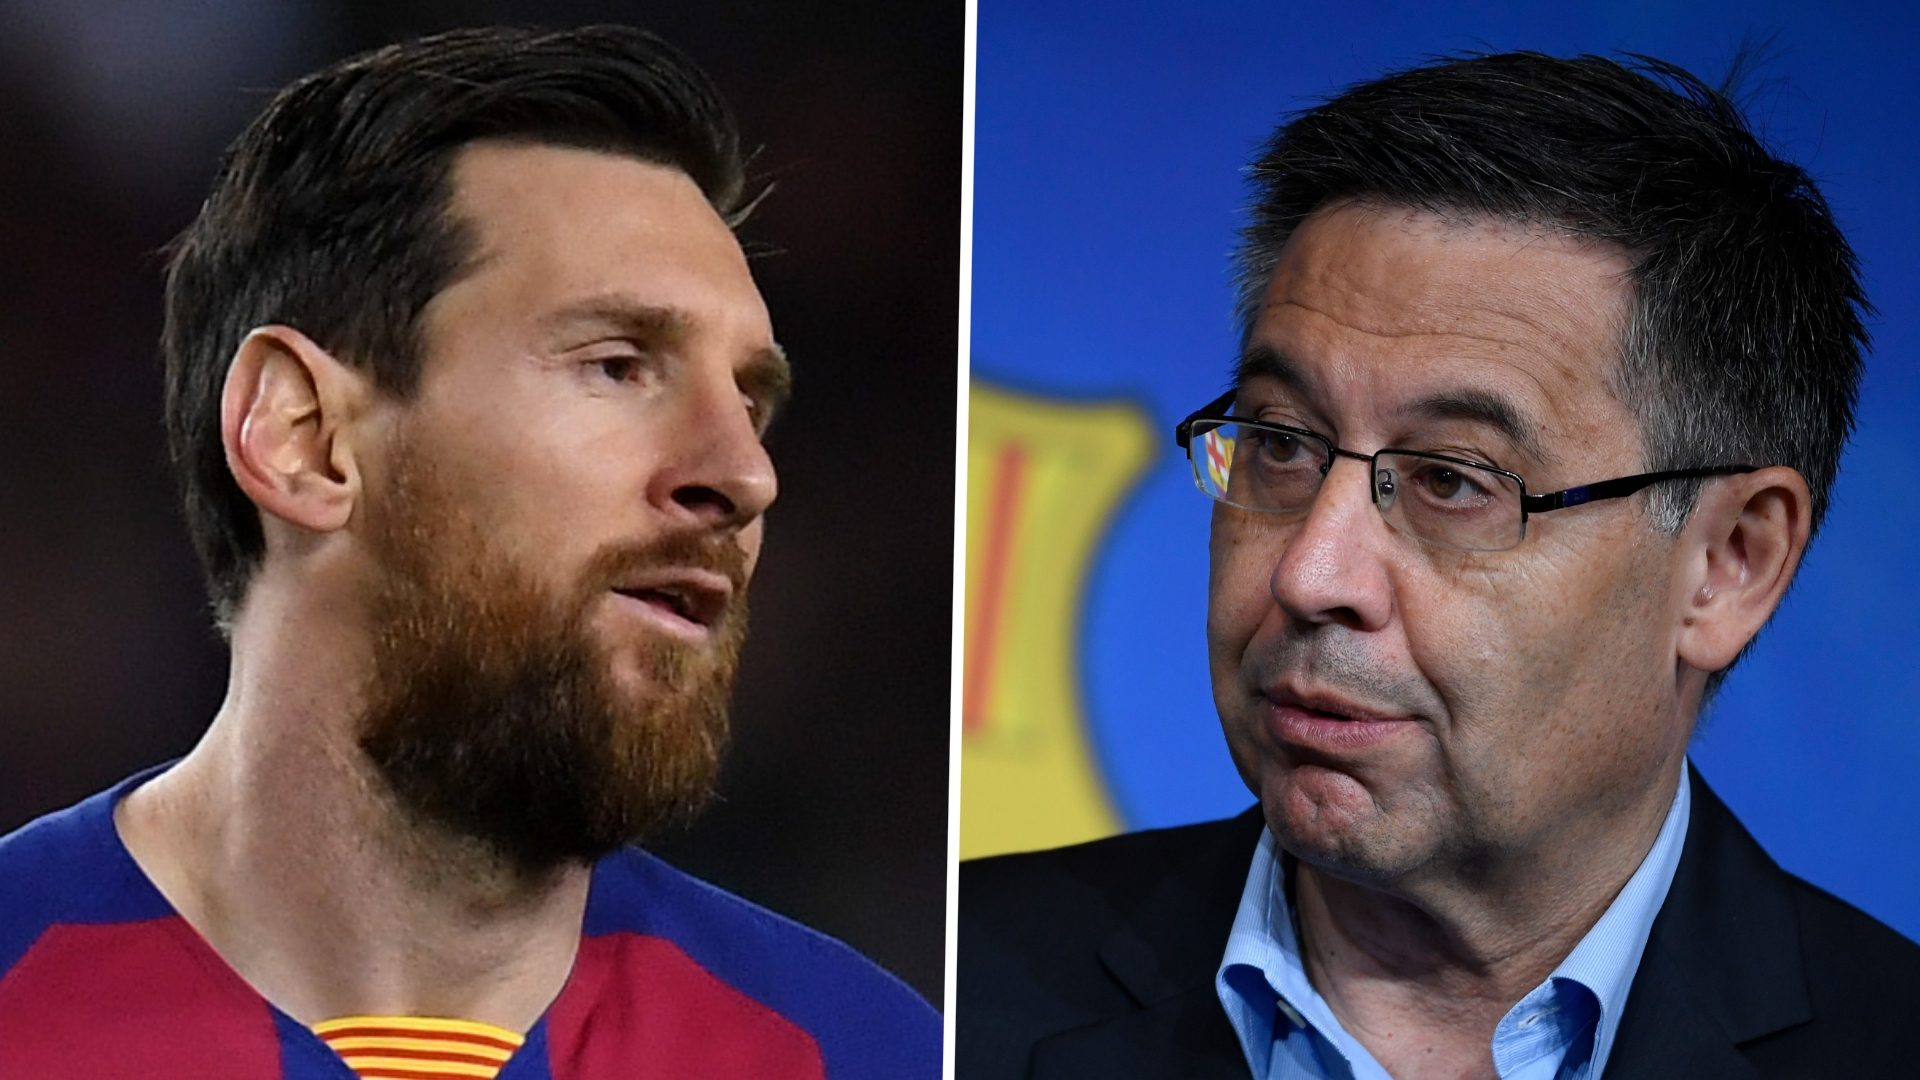 'Messi wants to end his career here' - Bartomeu addresses Barcelona exit talk